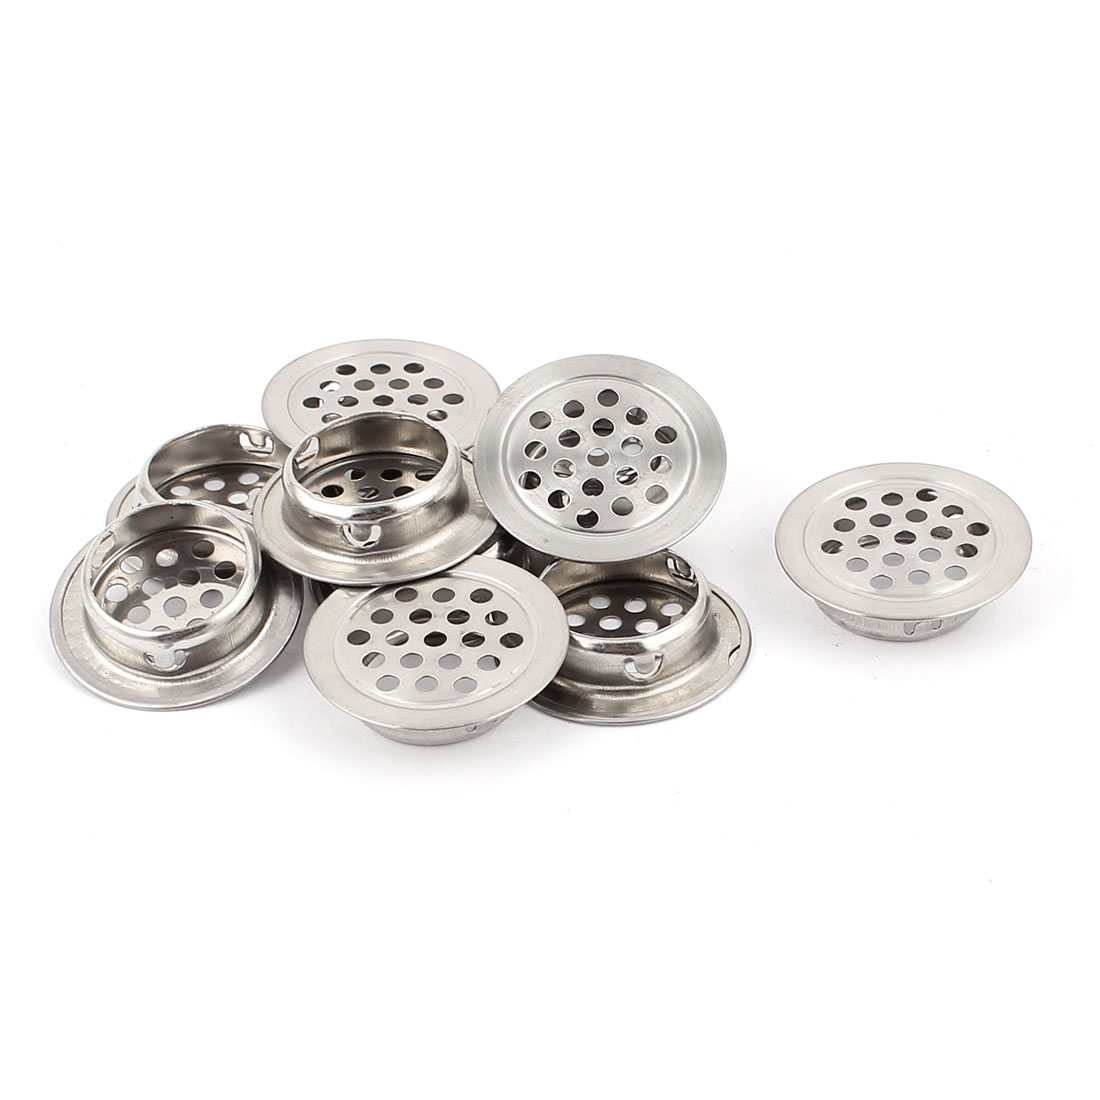 25mm Bottom Dia Round Flat Metal Air Vent Covers Ventilation Grilles 10PCS